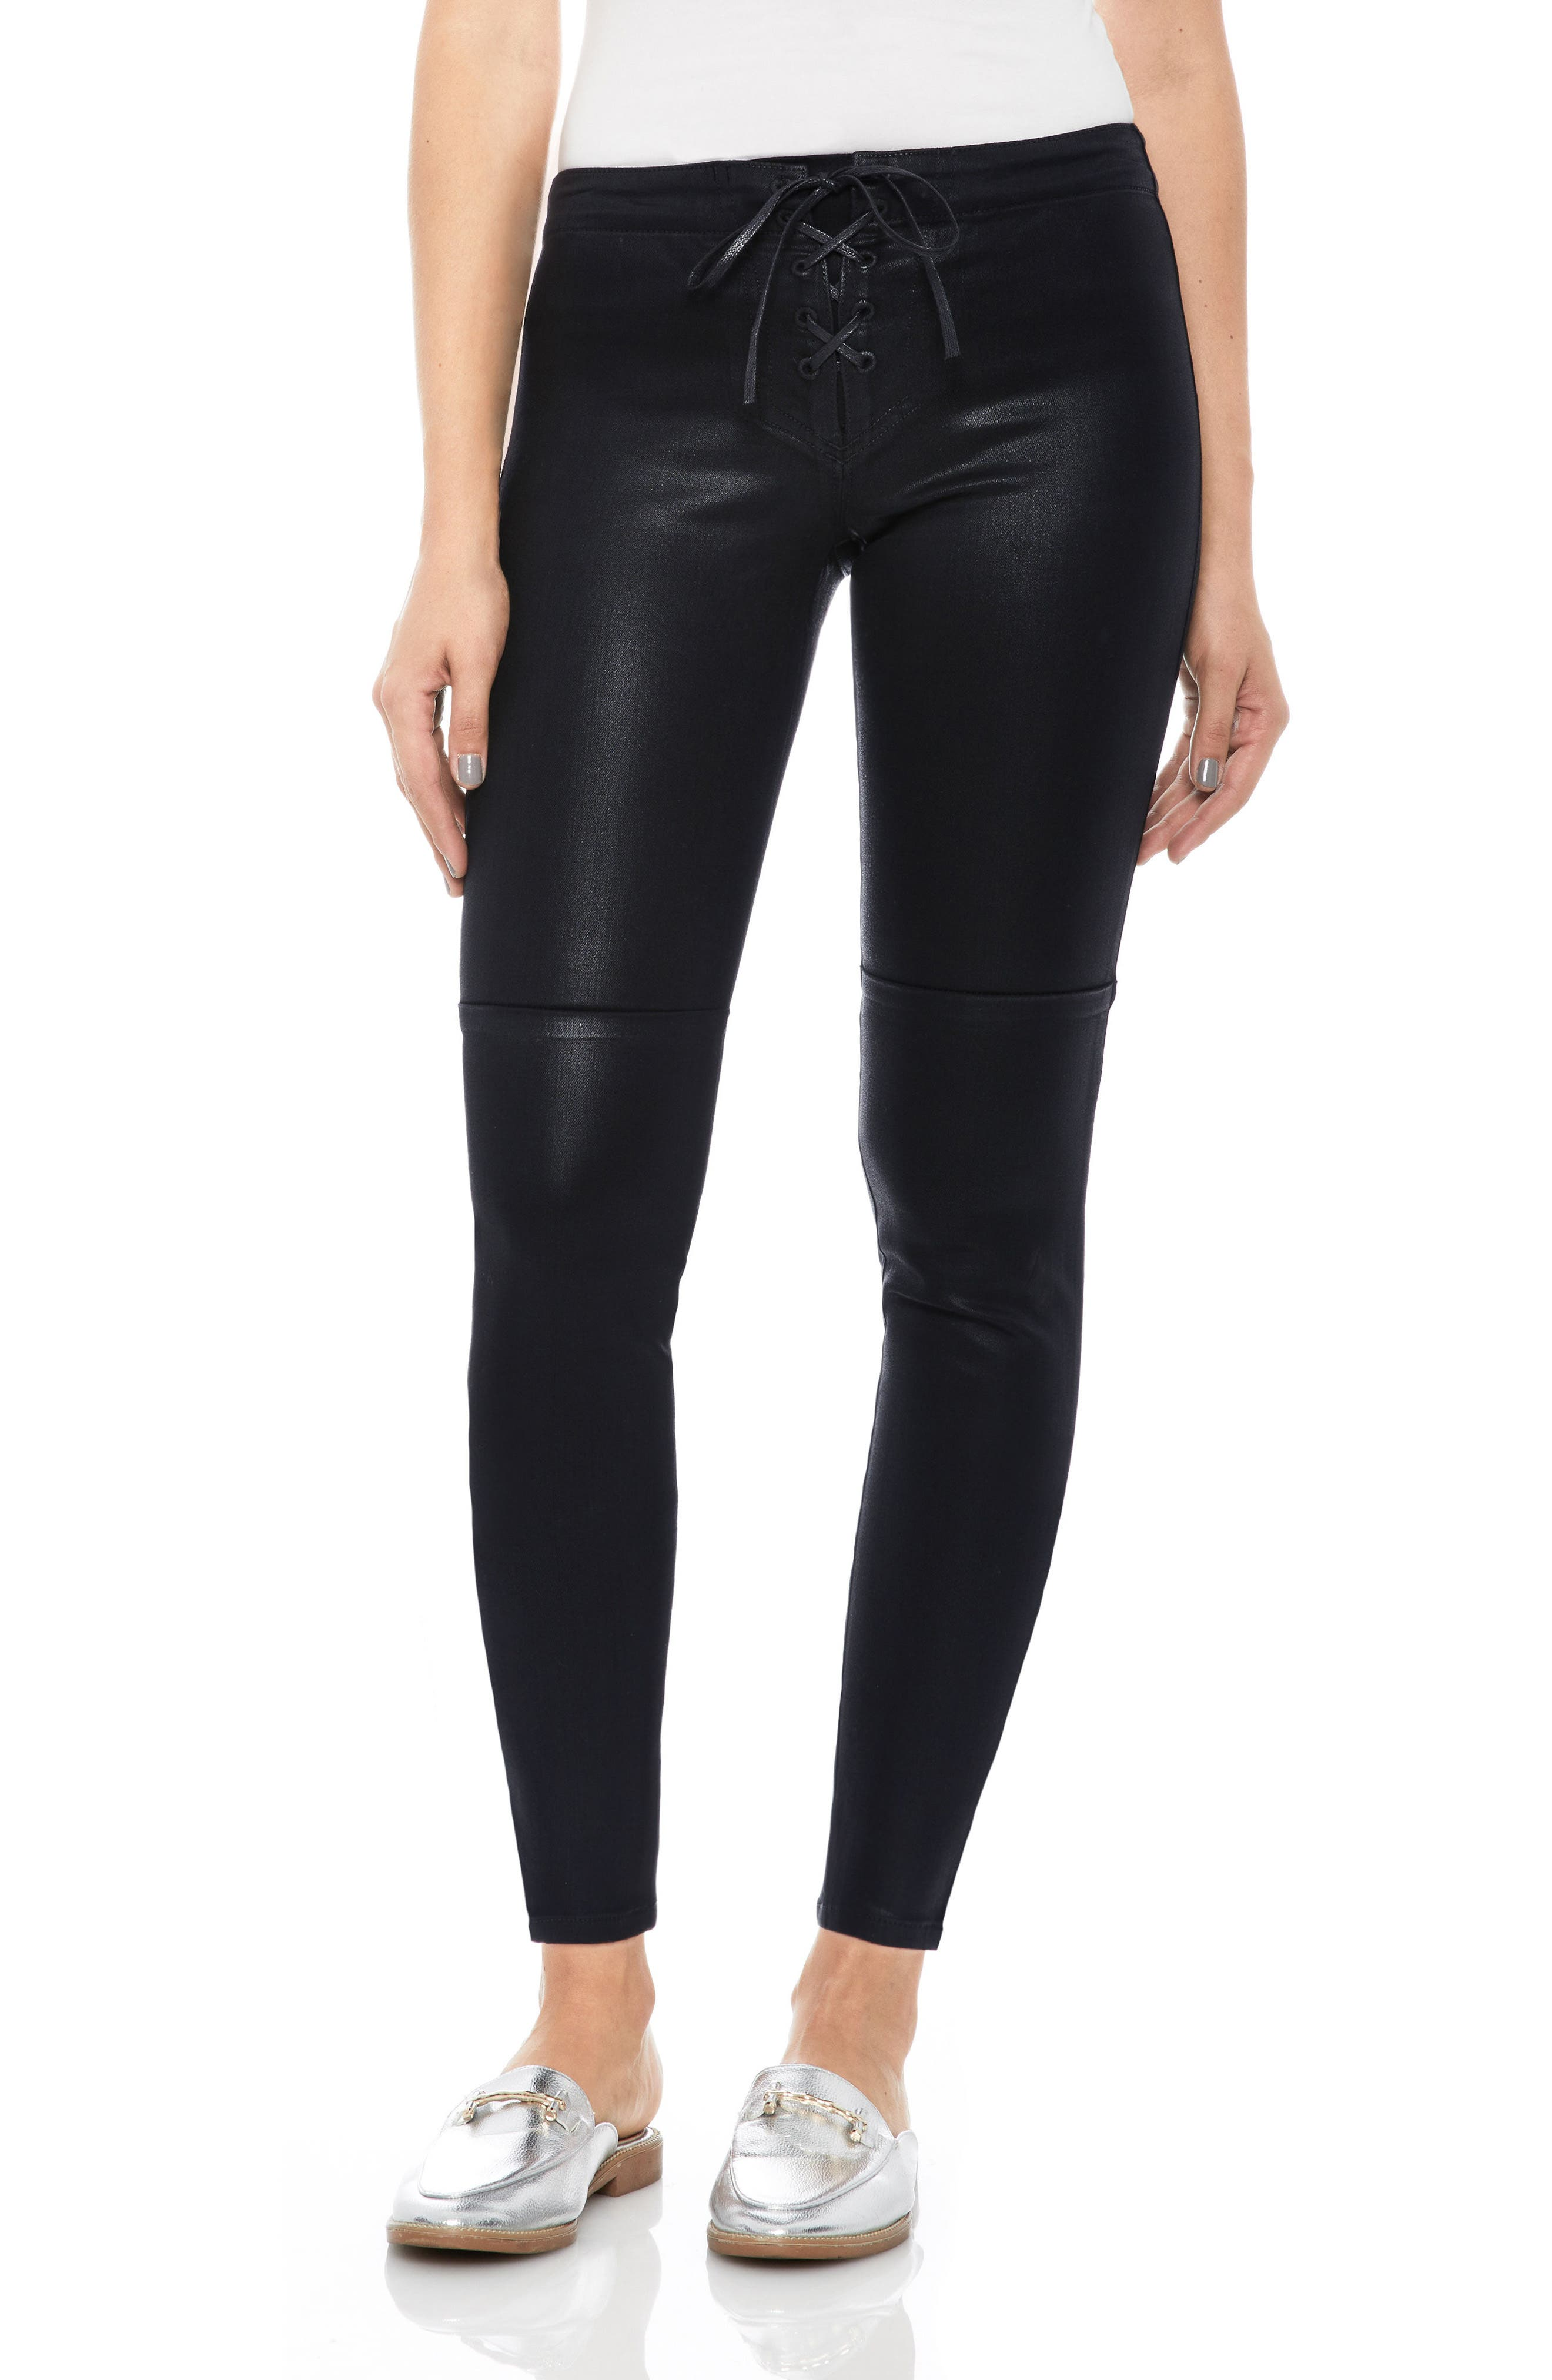 Taylor Hill x Joe's Icon Coated Ankle Skinny Pants,                             Main thumbnail 1, color,                             011